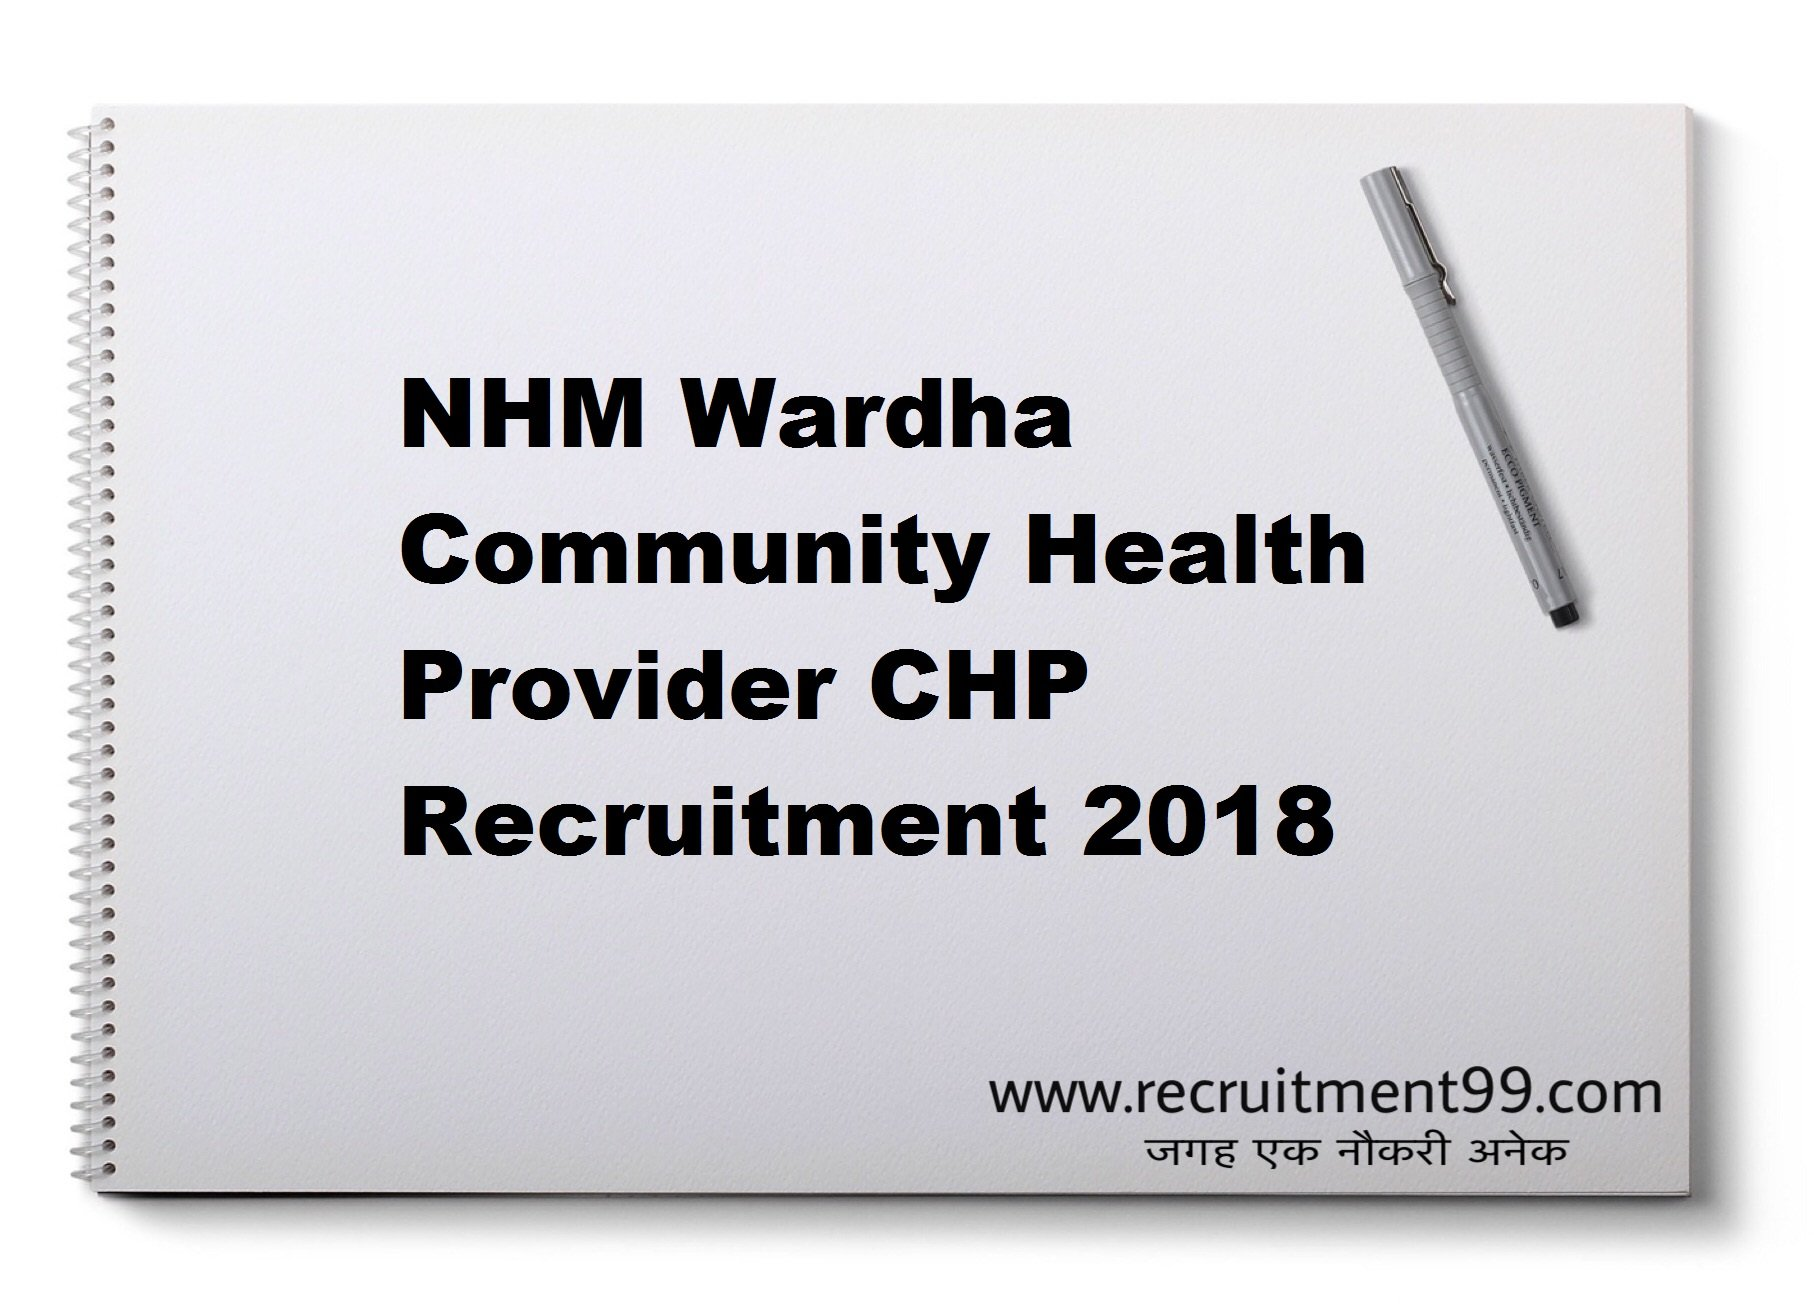 NHM Wardha Community Health Provider CHP Recruitment Admit Card Result 2018